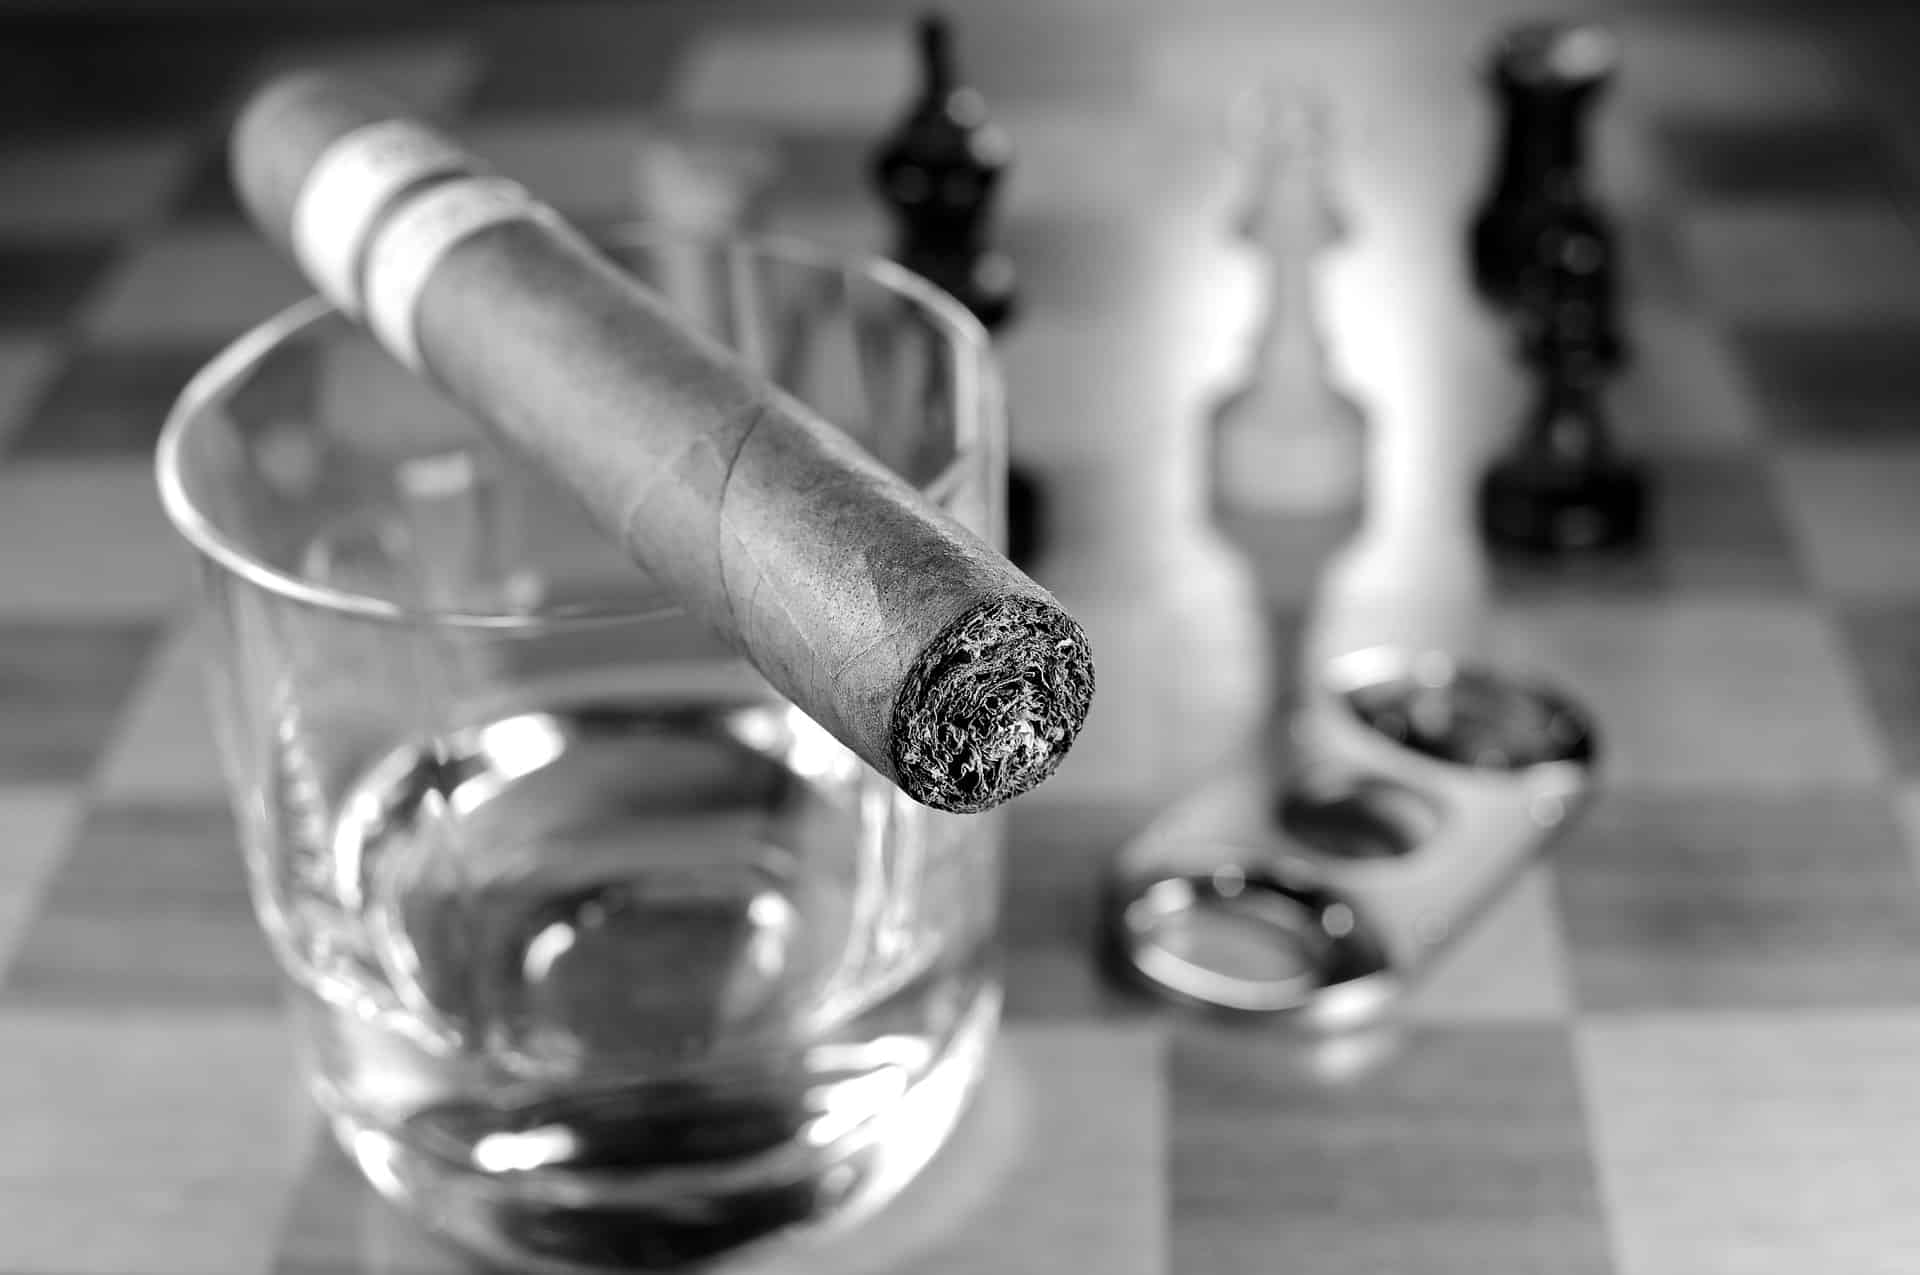 Best Cigar Spaces on cigarcutterexpert.com